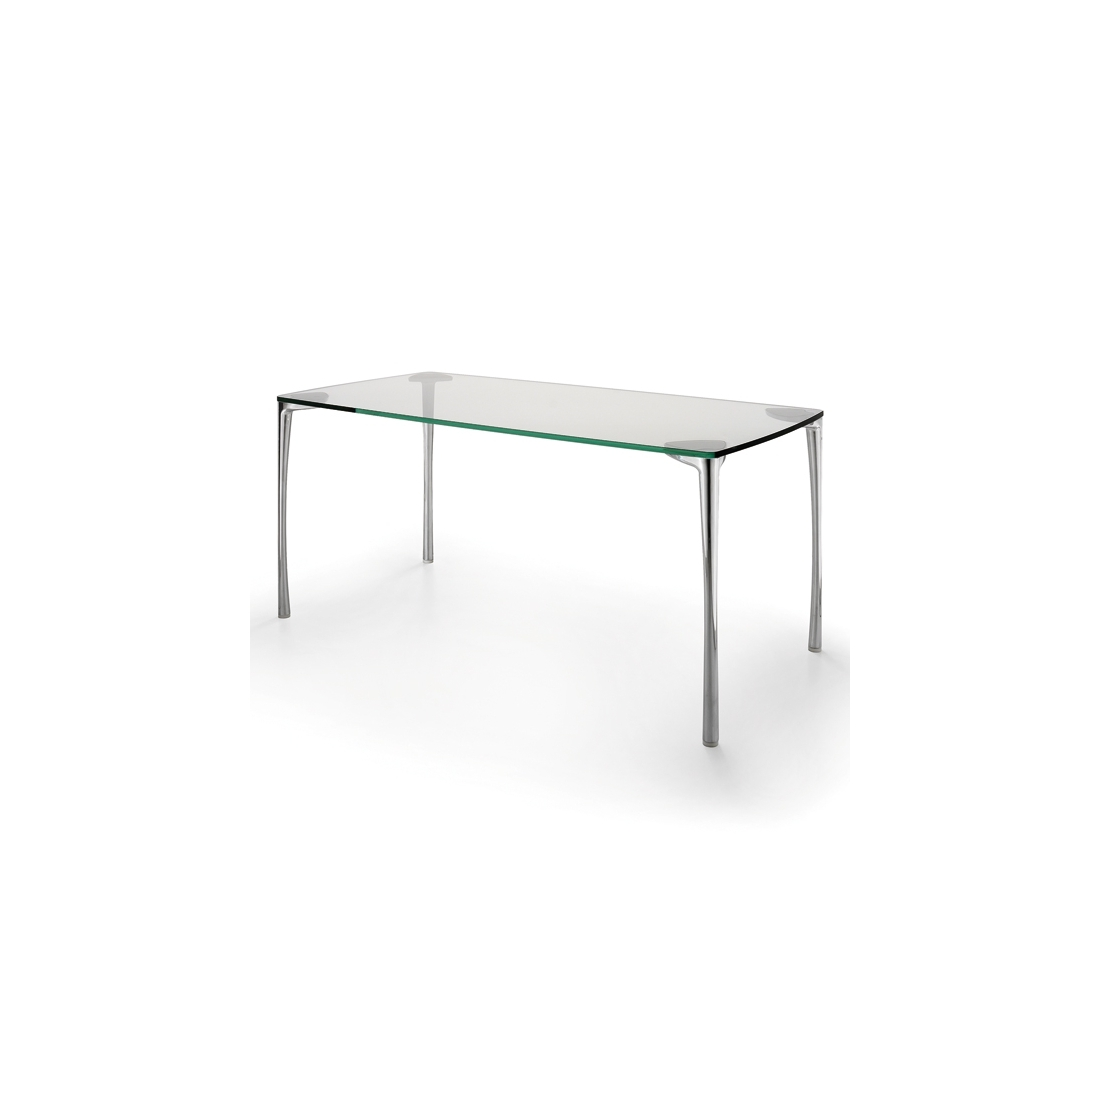 Table salle a manger elephas infiniti zendart design for Table salle a manger design